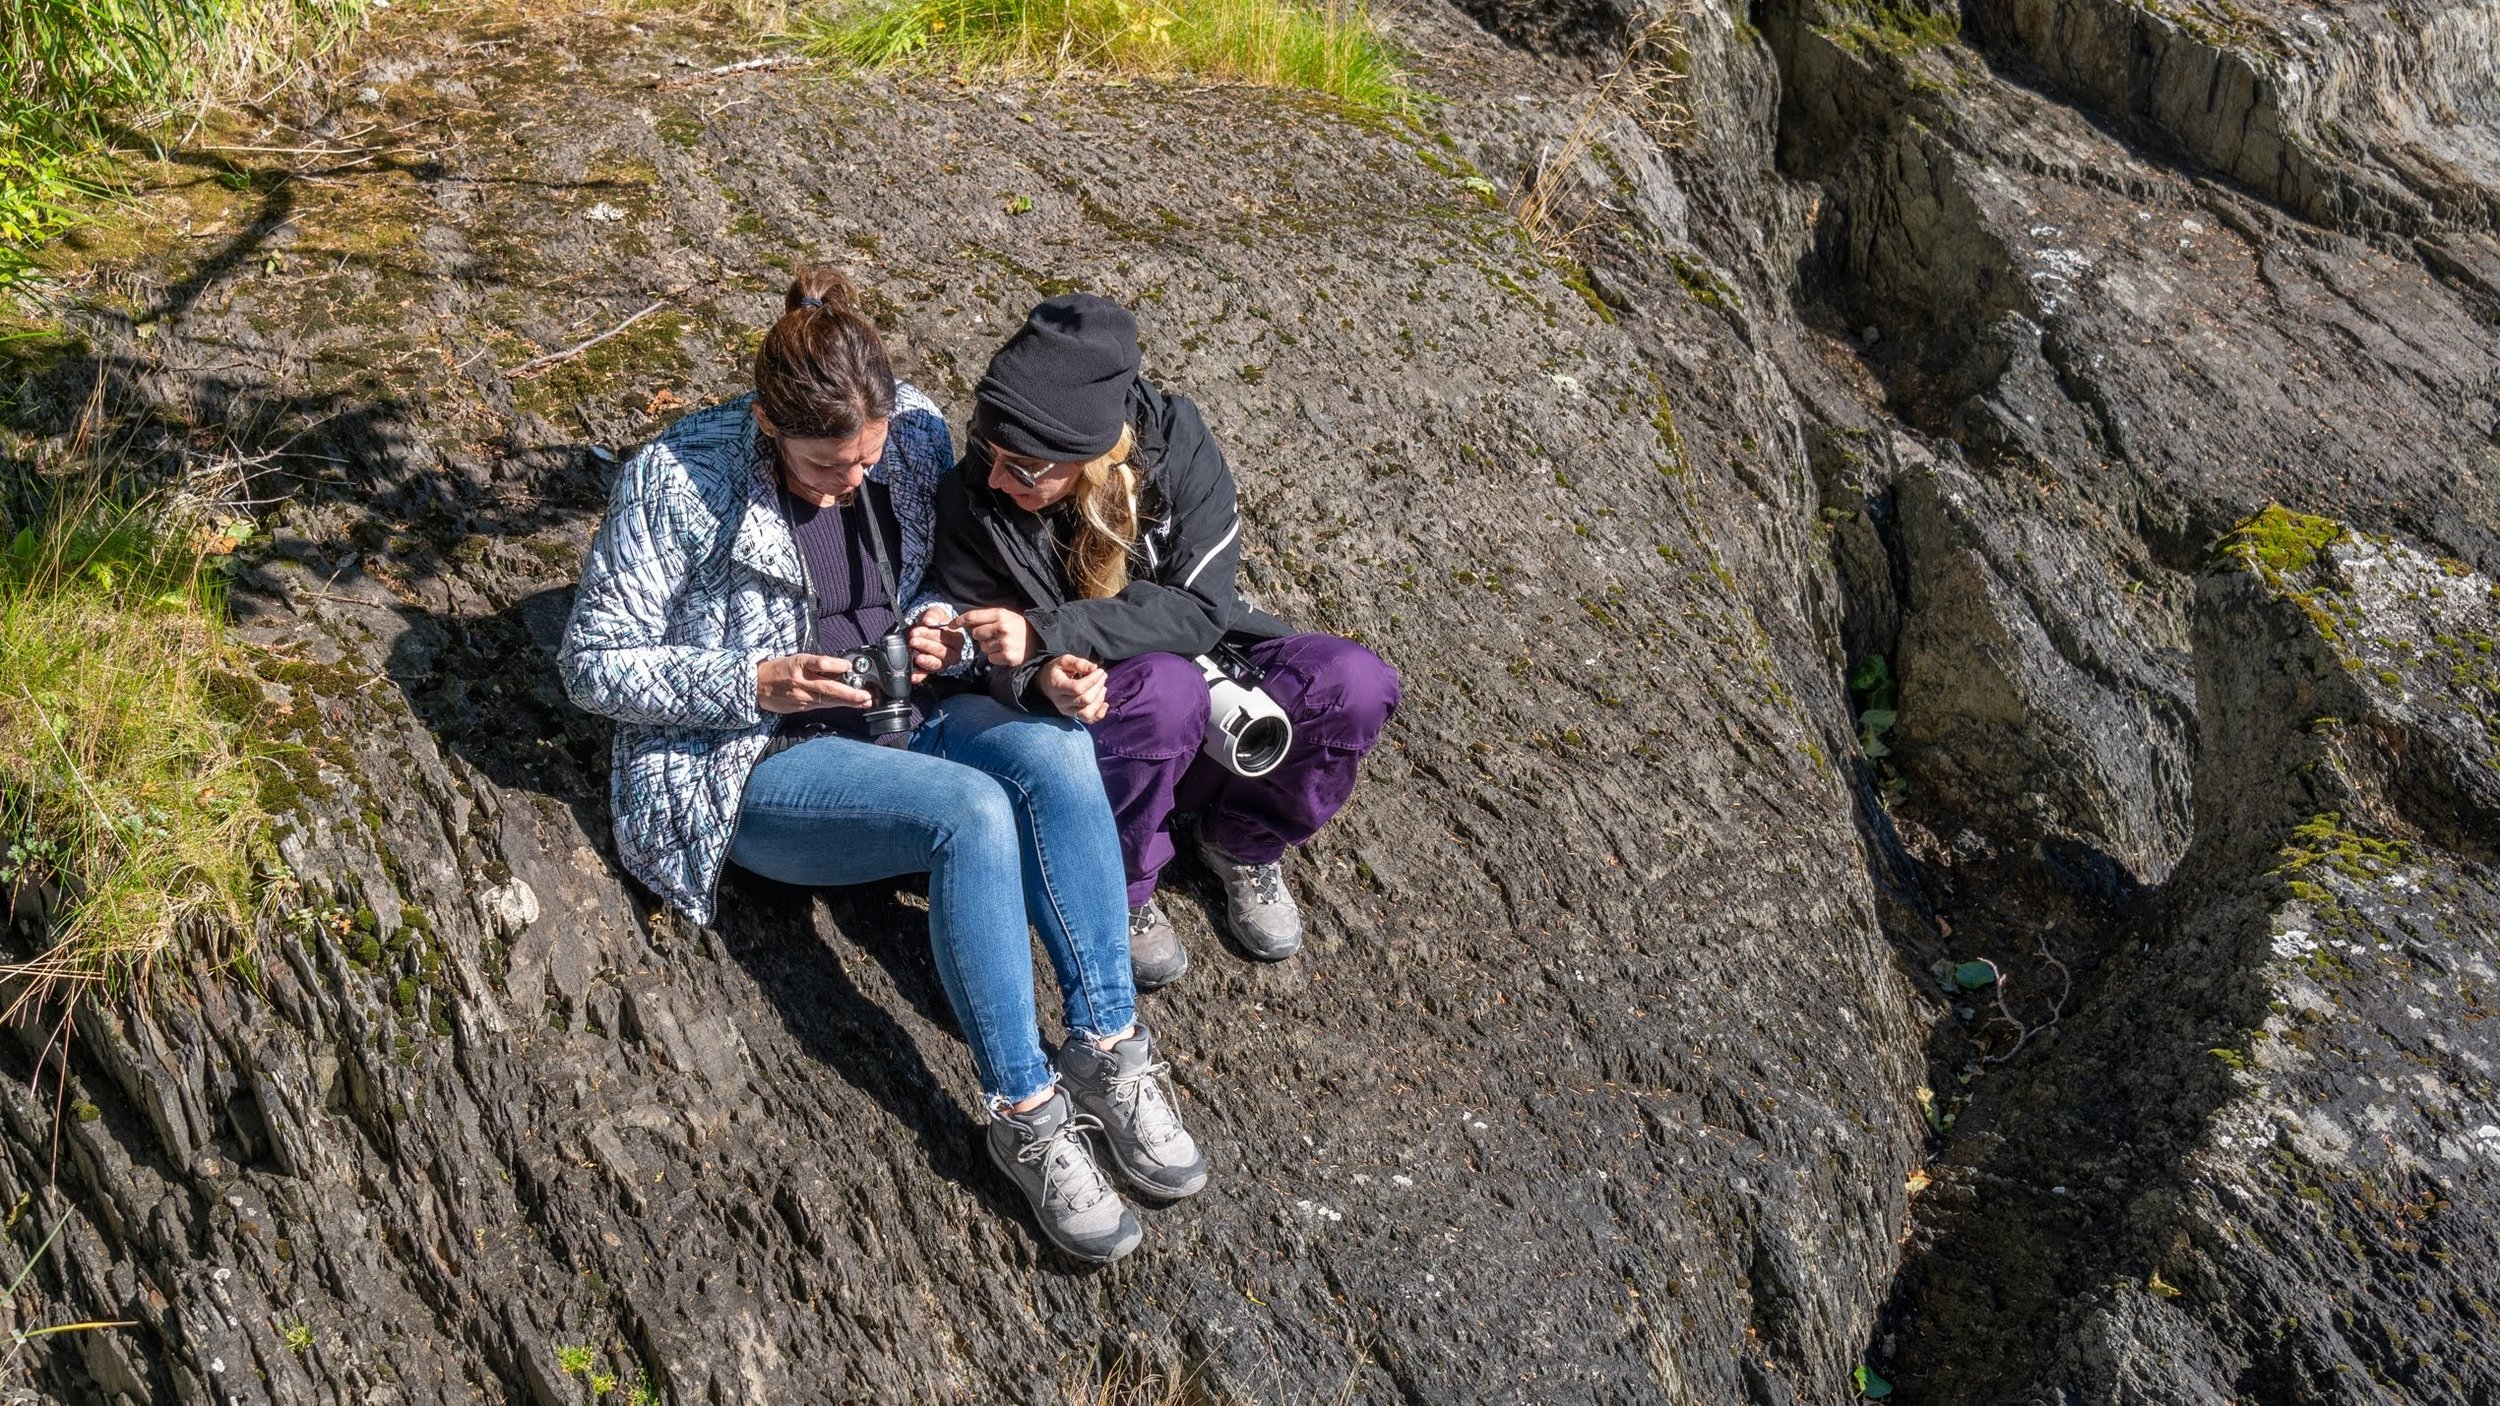 learn photography become a photo instructor further photo expeditions